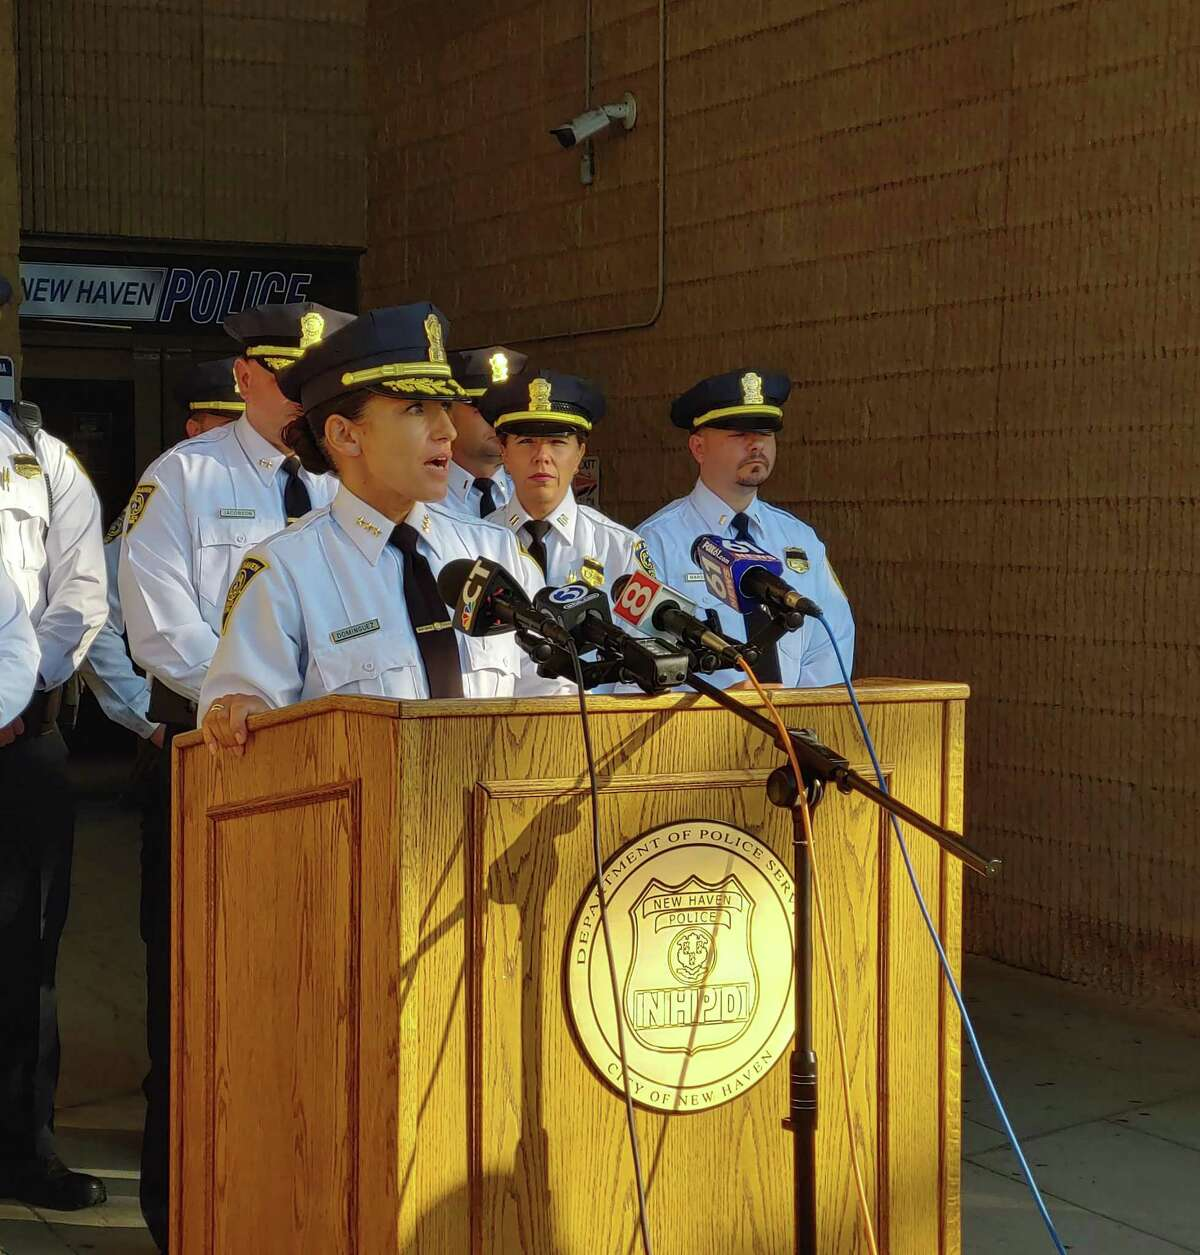 Acting New Haven Police Chief Renee Dominguez holds a press conference on Sept. 18, 2021 about a fatal car crash in Las Vegas, Nevada involving New Haven officers.